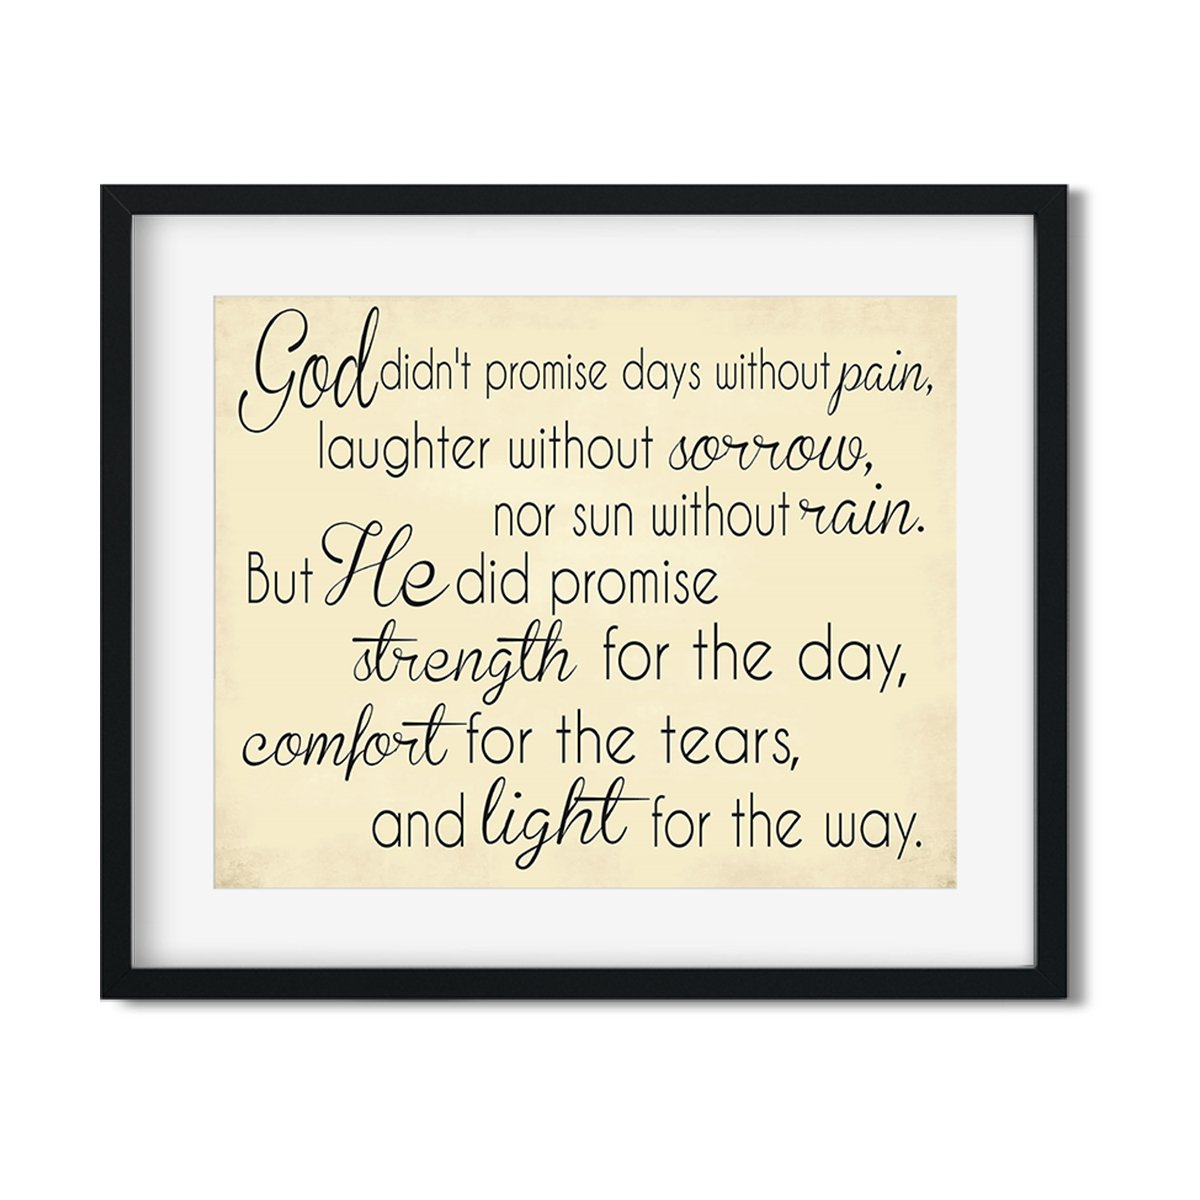 God didn't promise days without pain - Art Print - Netties Expressions